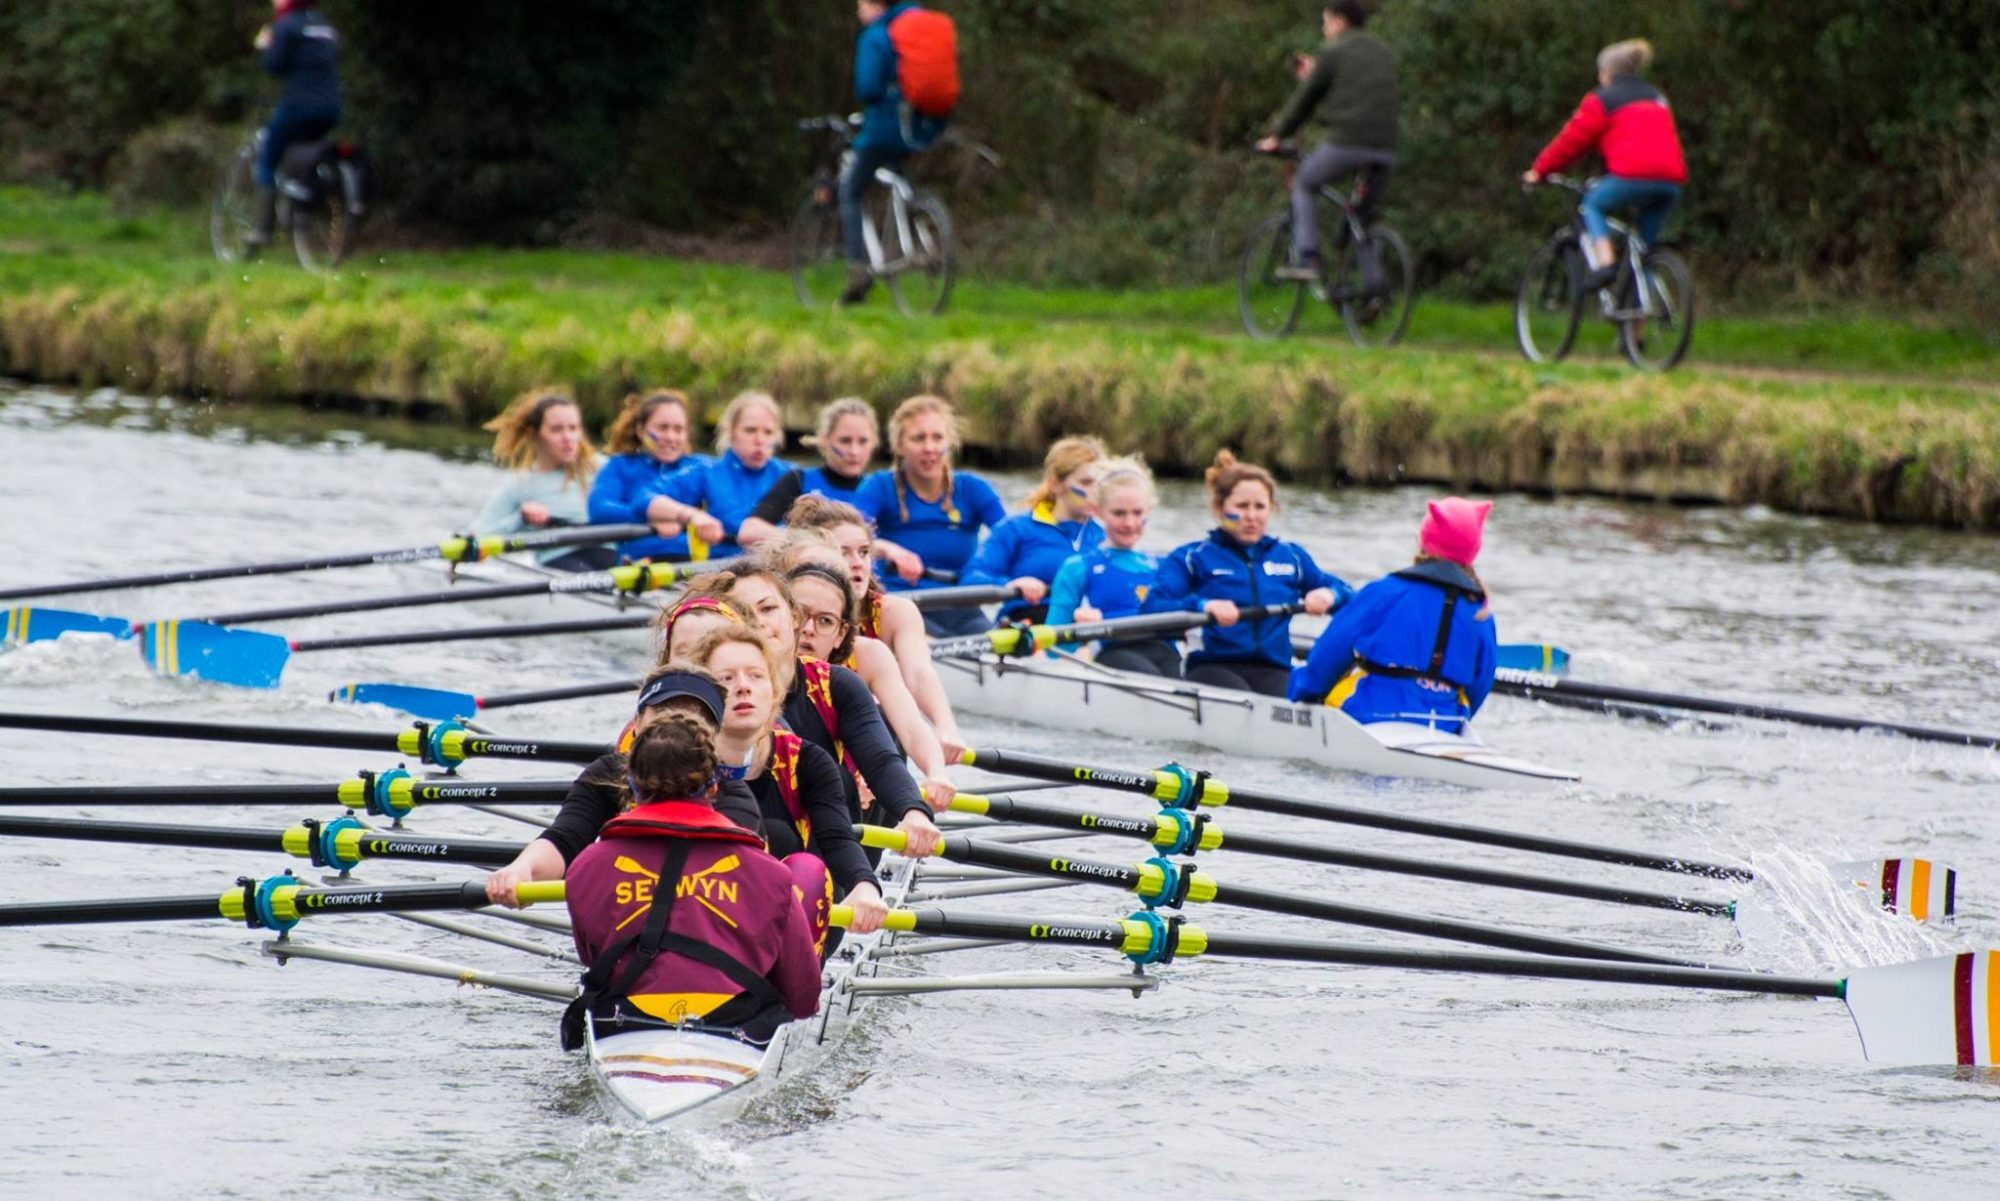 Selwyn College Boat Club